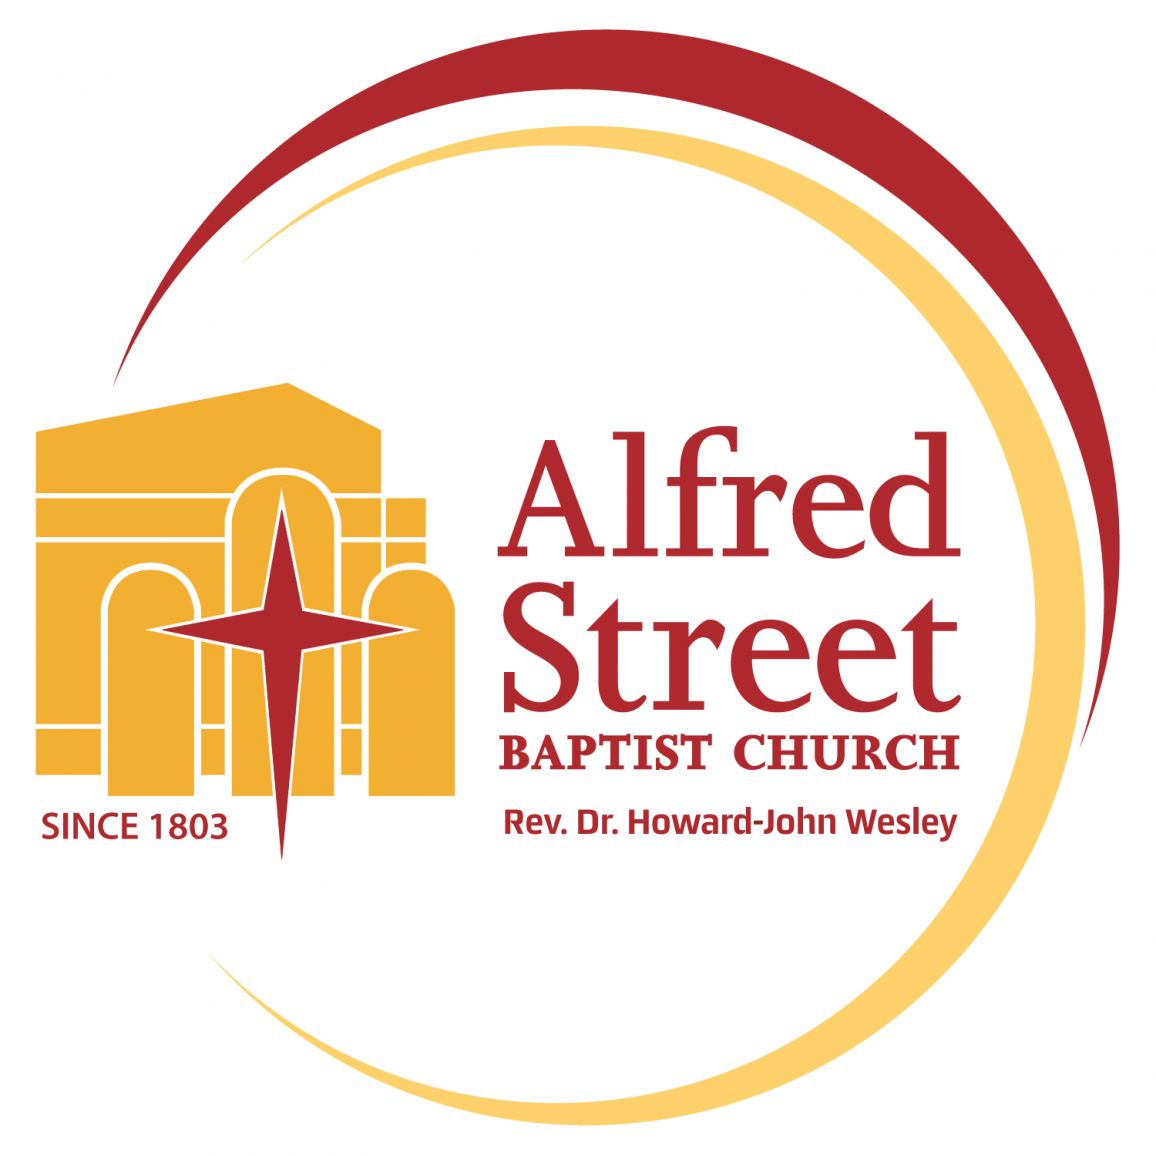 Alfred Street Baptist Church